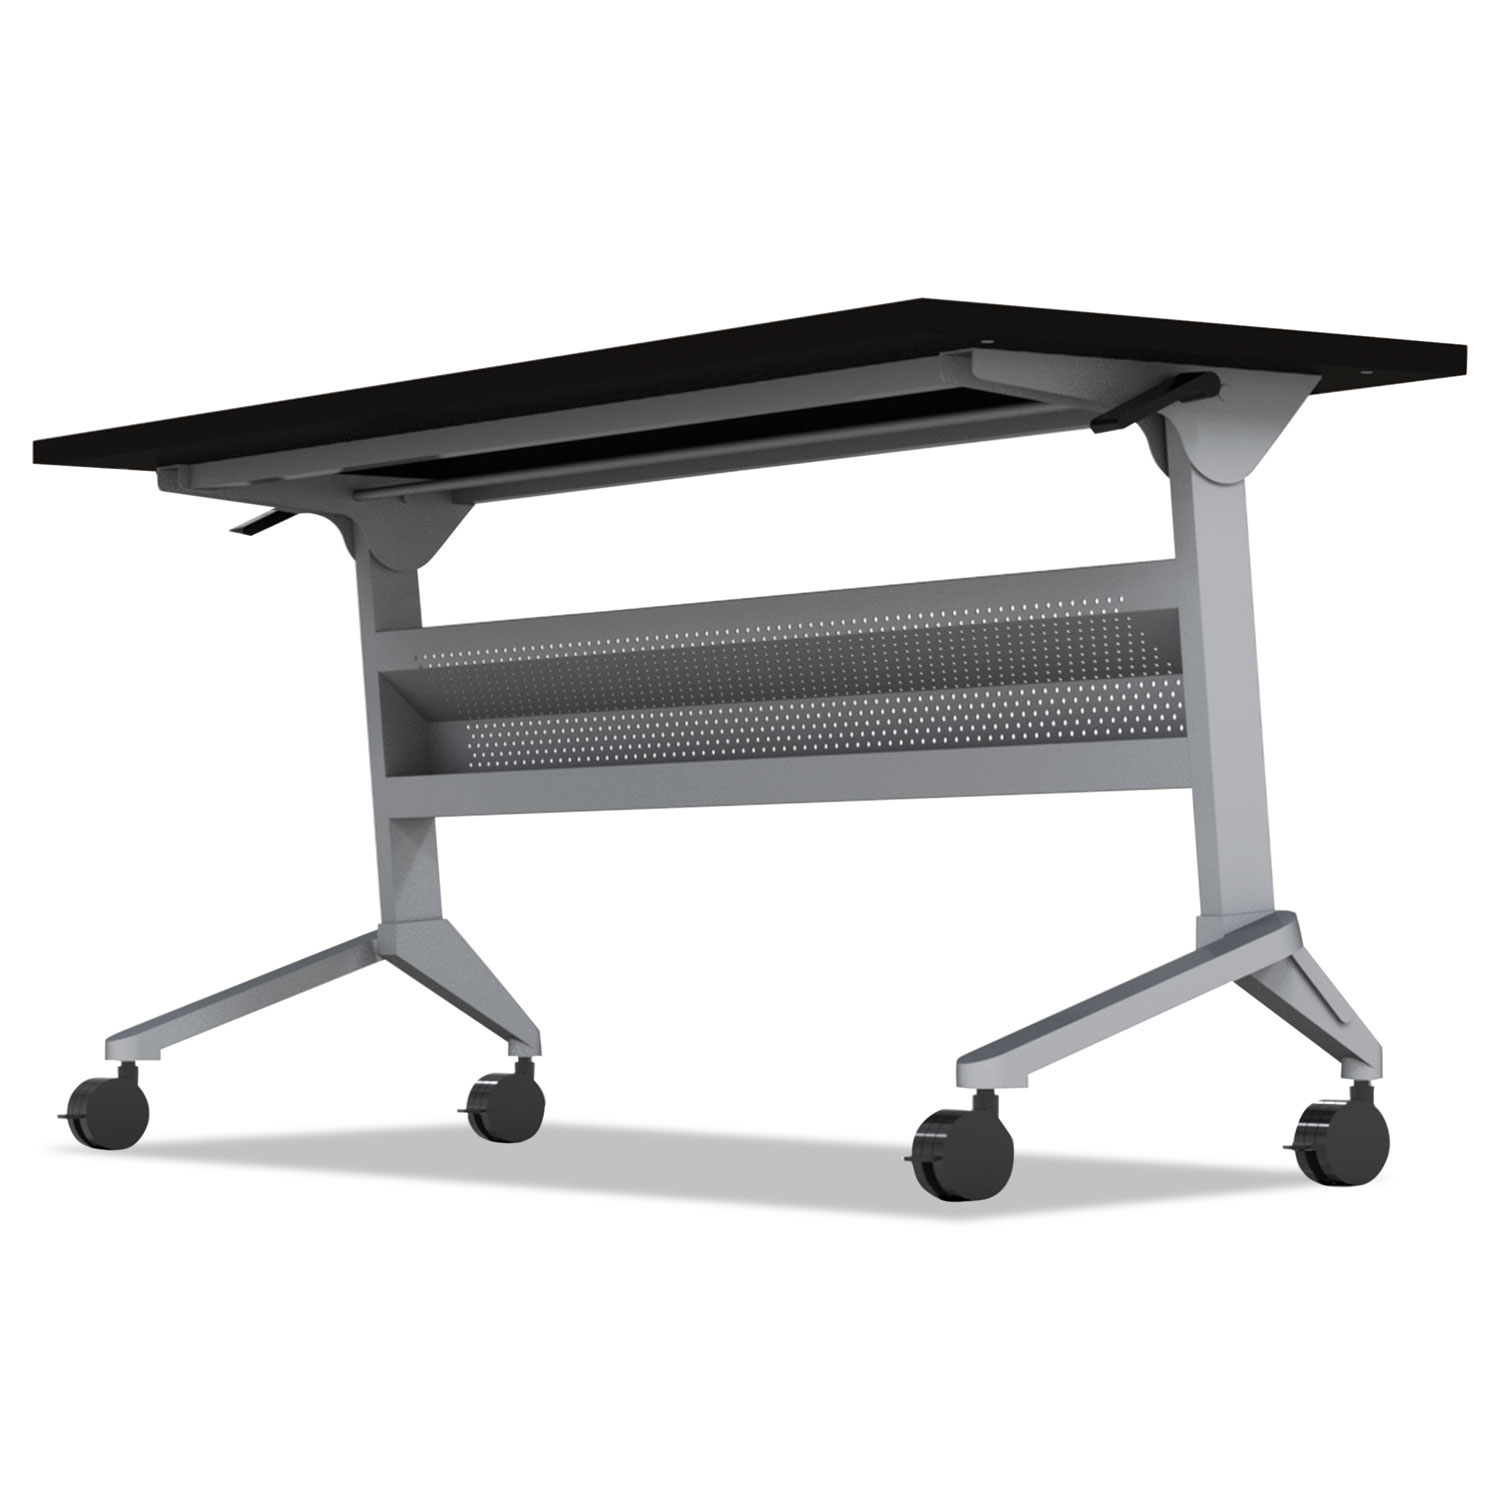 Flip-n-Go Table Base, 70 1/2w x 21 1/4d x 27 7/8h, Silver